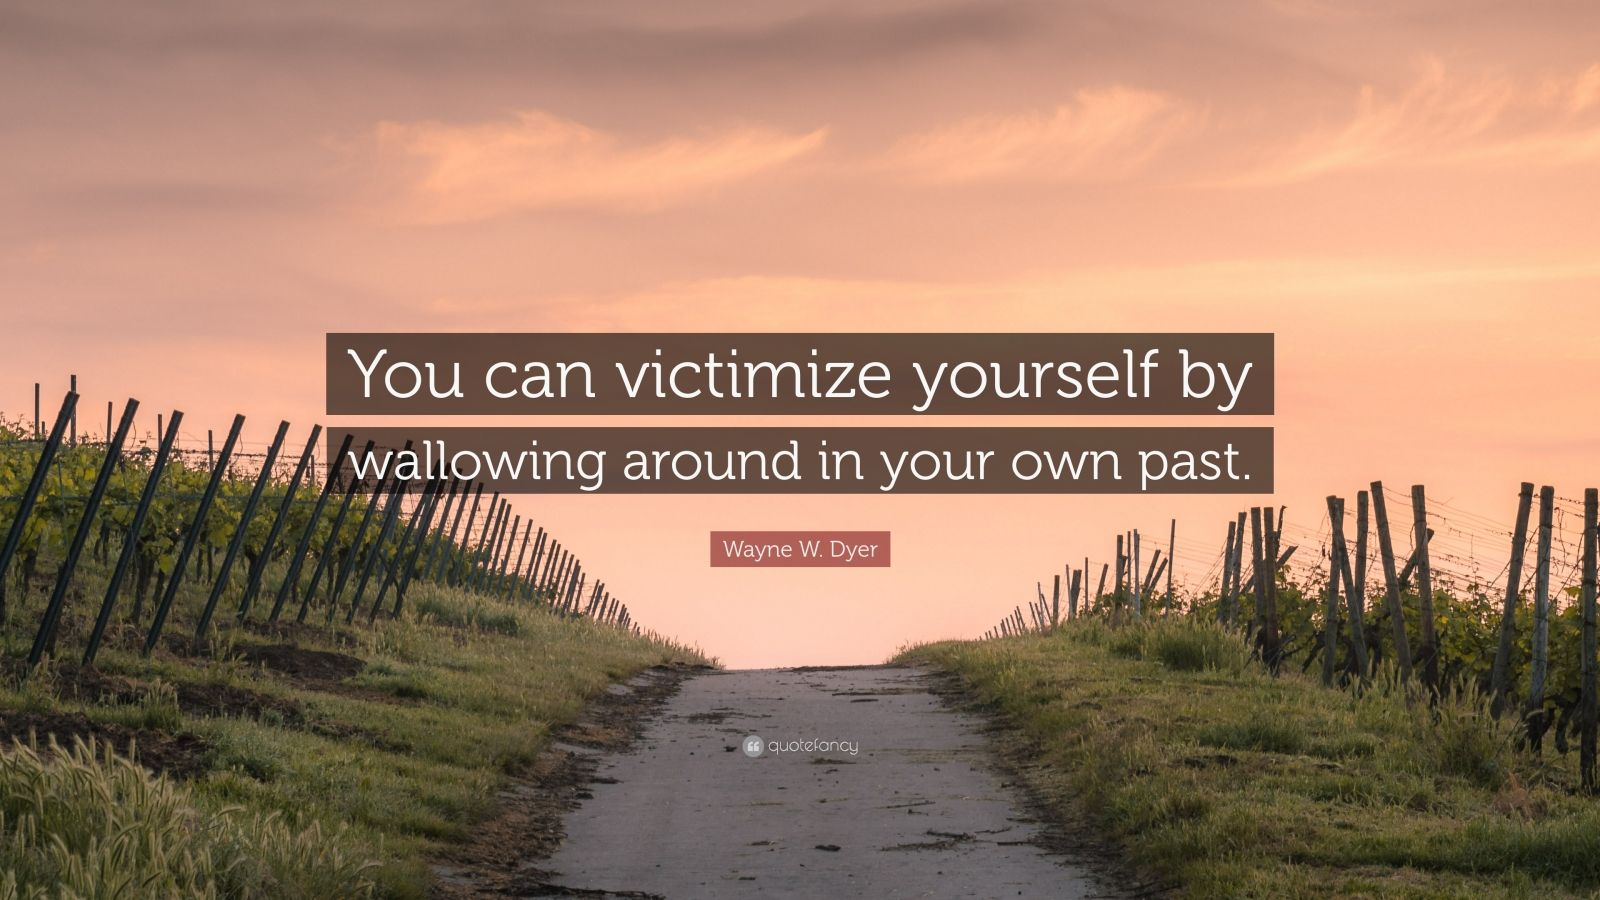 """Wayne W. Dyer Quote: """"You can victimize yourself by wallowing around in your own past."""""""